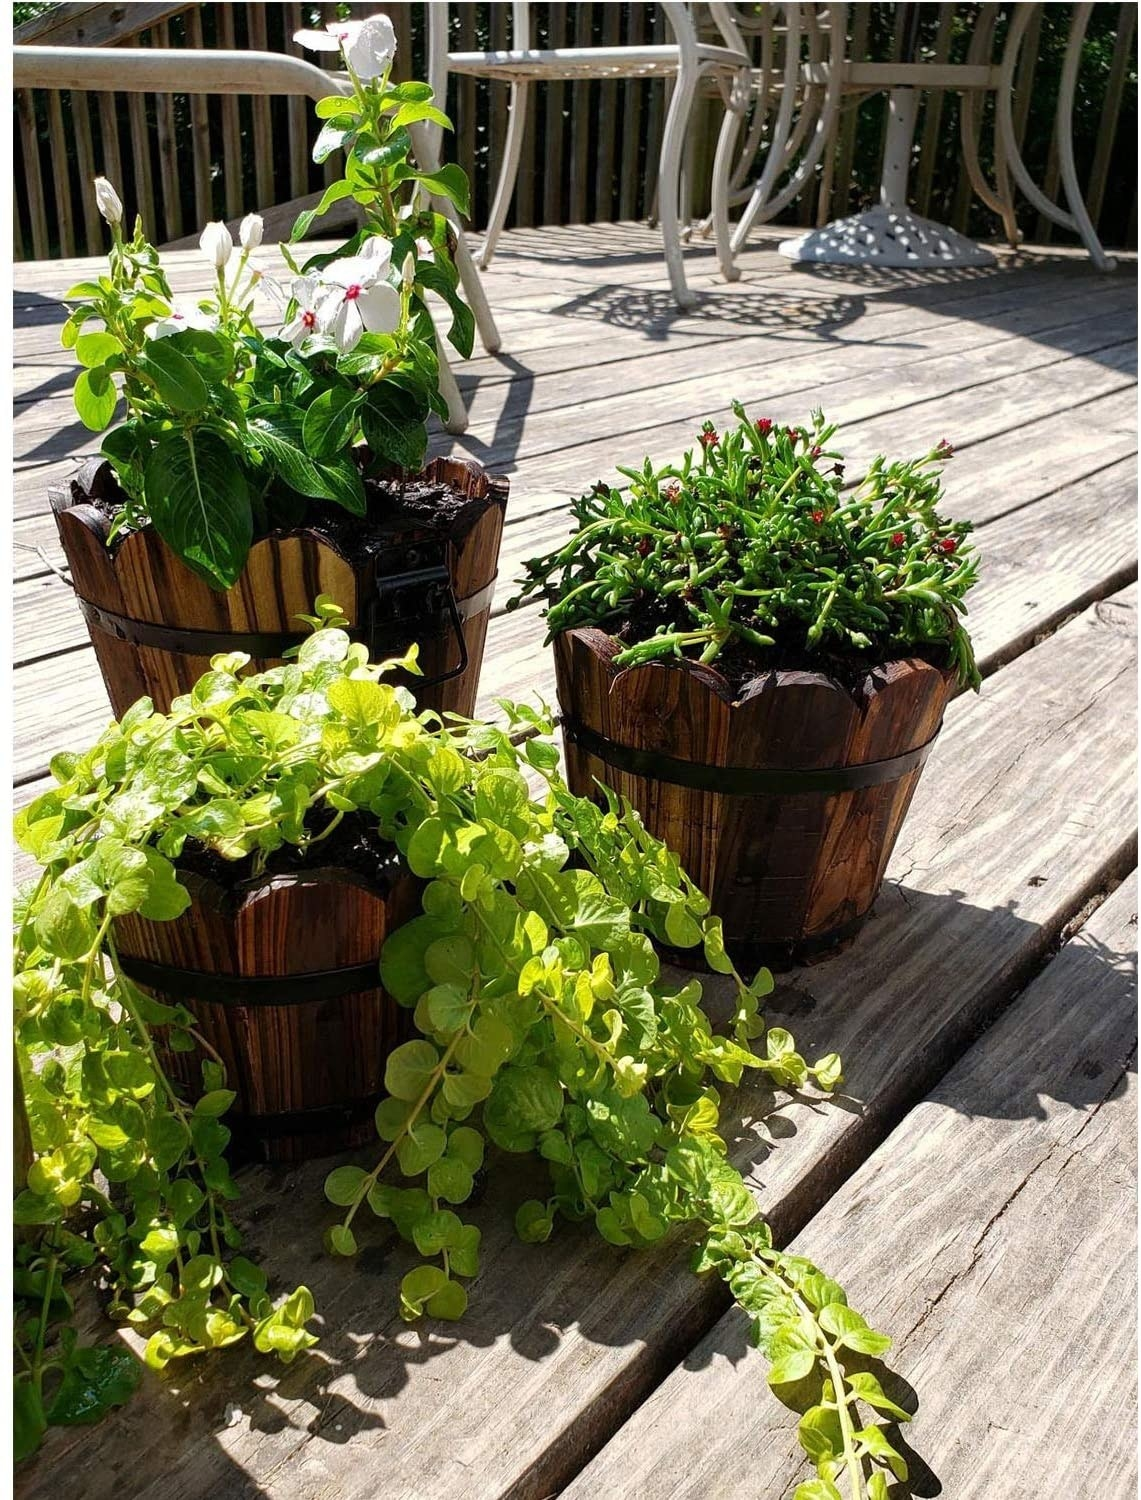 three wooden barrel pots with plants in them